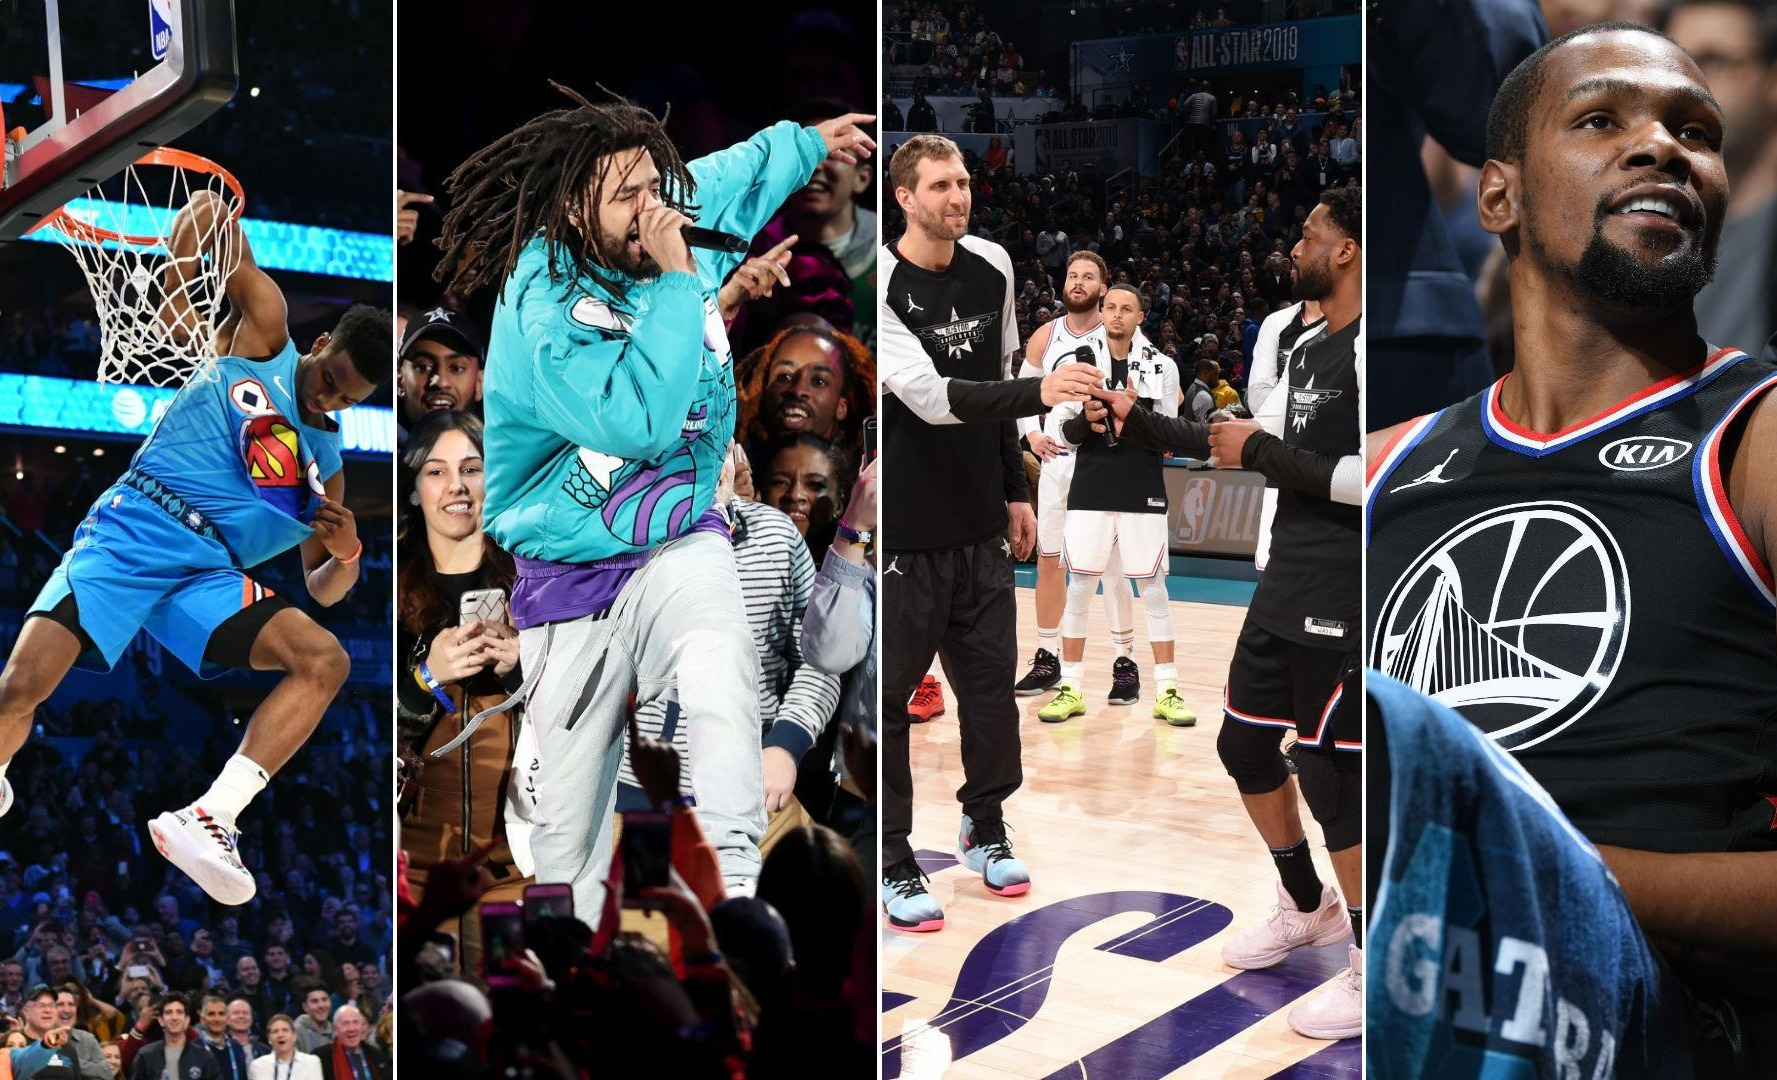 Collage of NBA All Stars Game and Music